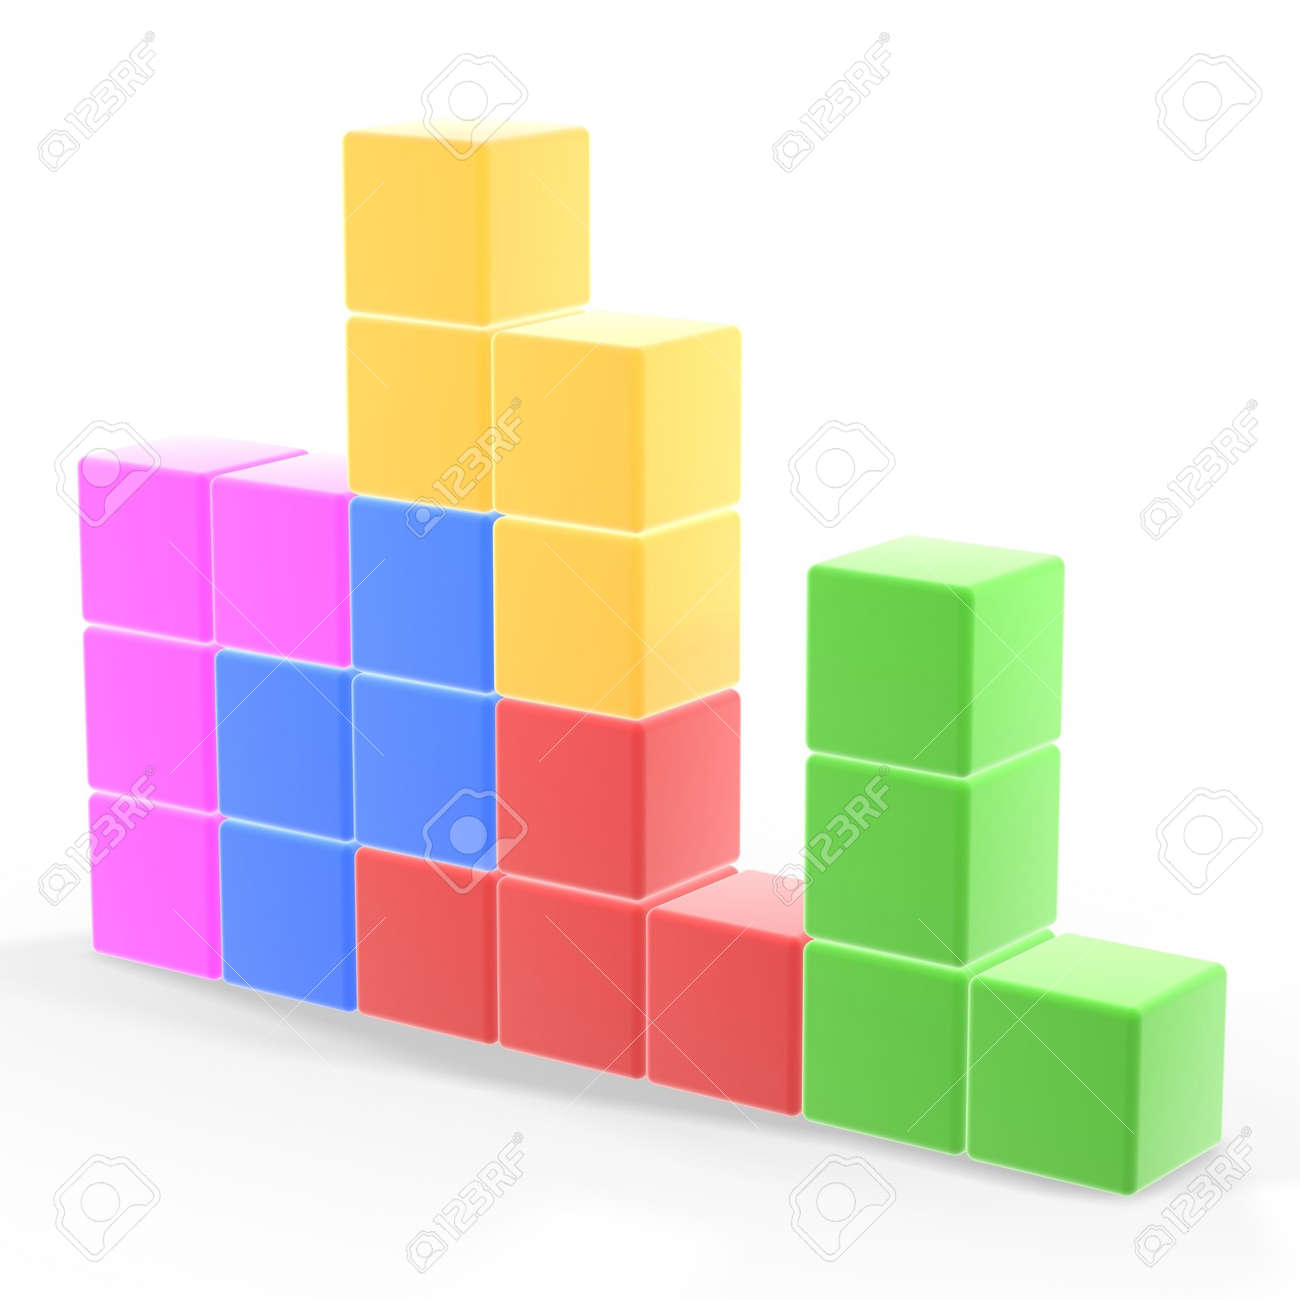 Classic tetris game pieces fit together stock photo picture and classic tetris game pieces fit together stock photo 936776 ccuart Gallery